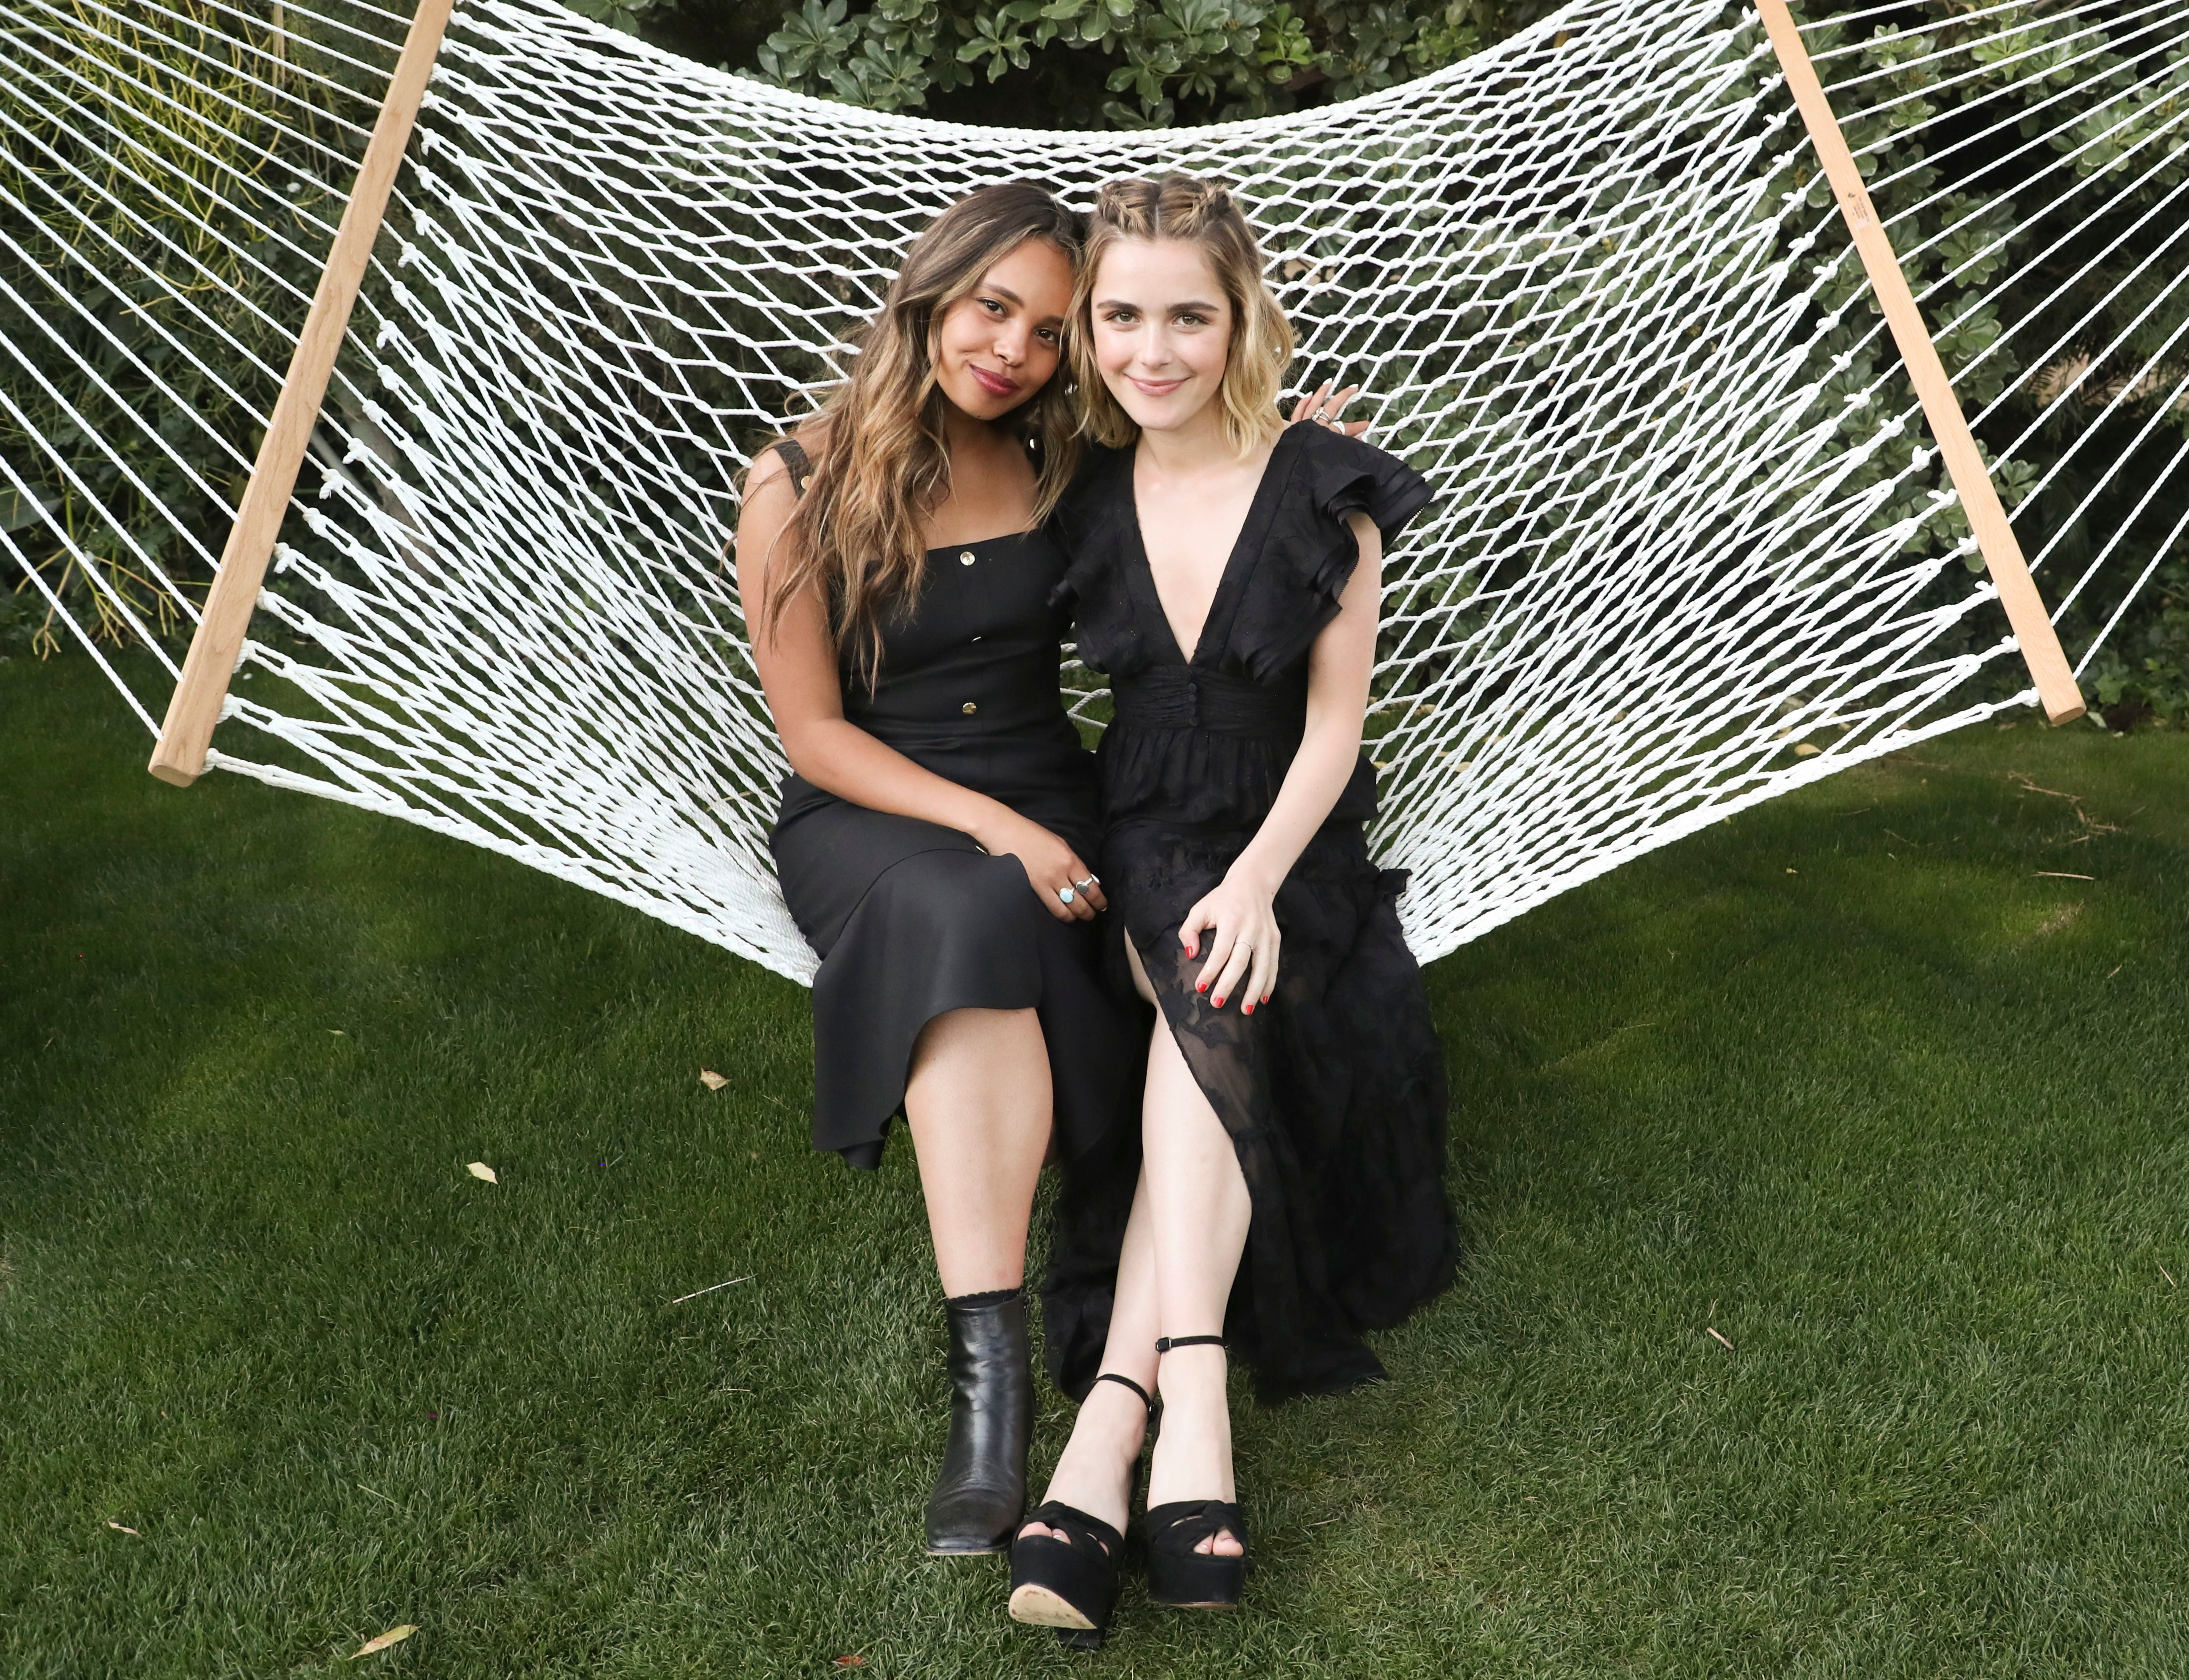 Alisha Boe and Kiernan Shipka5th Annual ZOEasis Party, Coachella Valley Music and Arts Festival, Weekend 1, Day 1, Palm Springs, USA - 12 Apr 2019